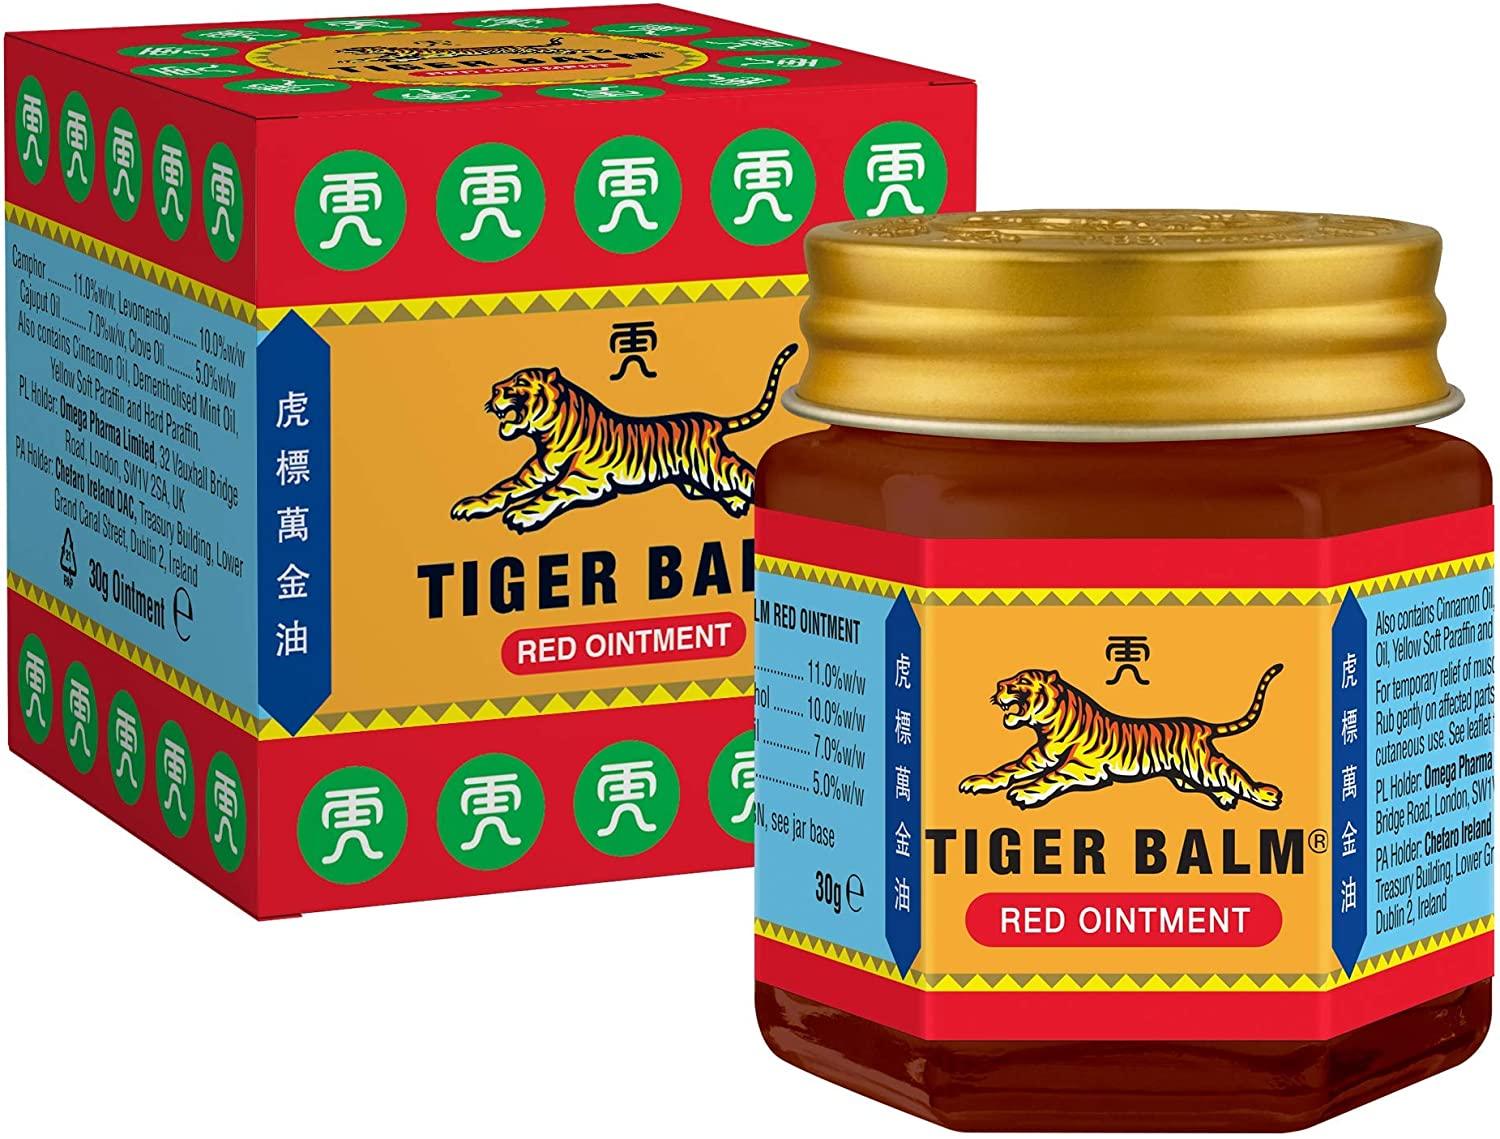 Tiger Balm Red Ointment 30 G Temporary Relief From Minor Muscular Aches And Pains Amazon Co Uk Health Personal Care